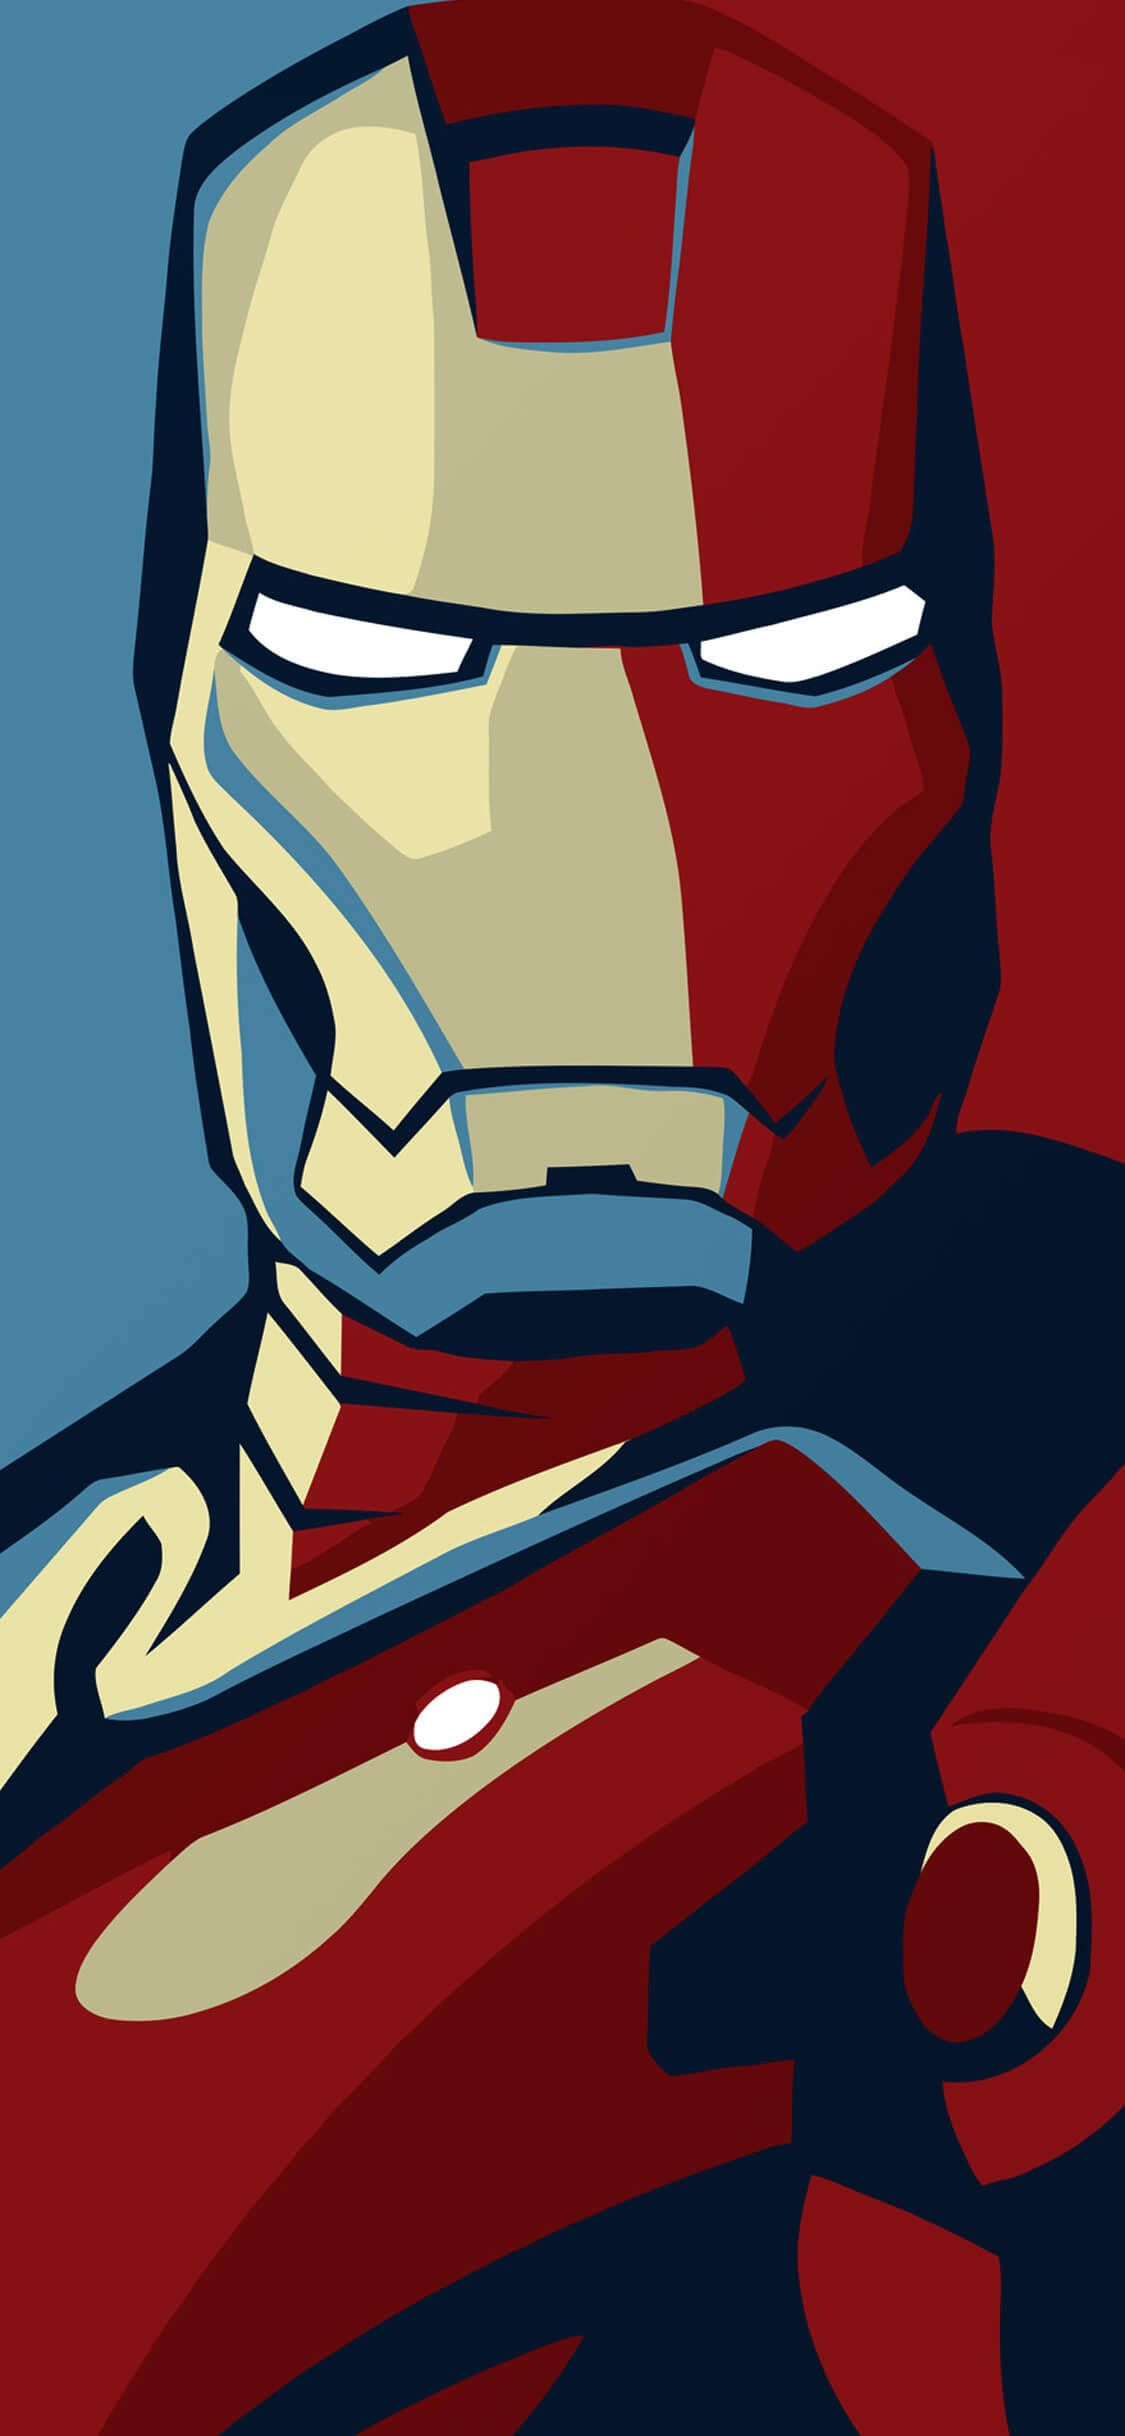 1125x2436 35+ Best Iron Man Iphone Wallpapers 2019 - Templatefor